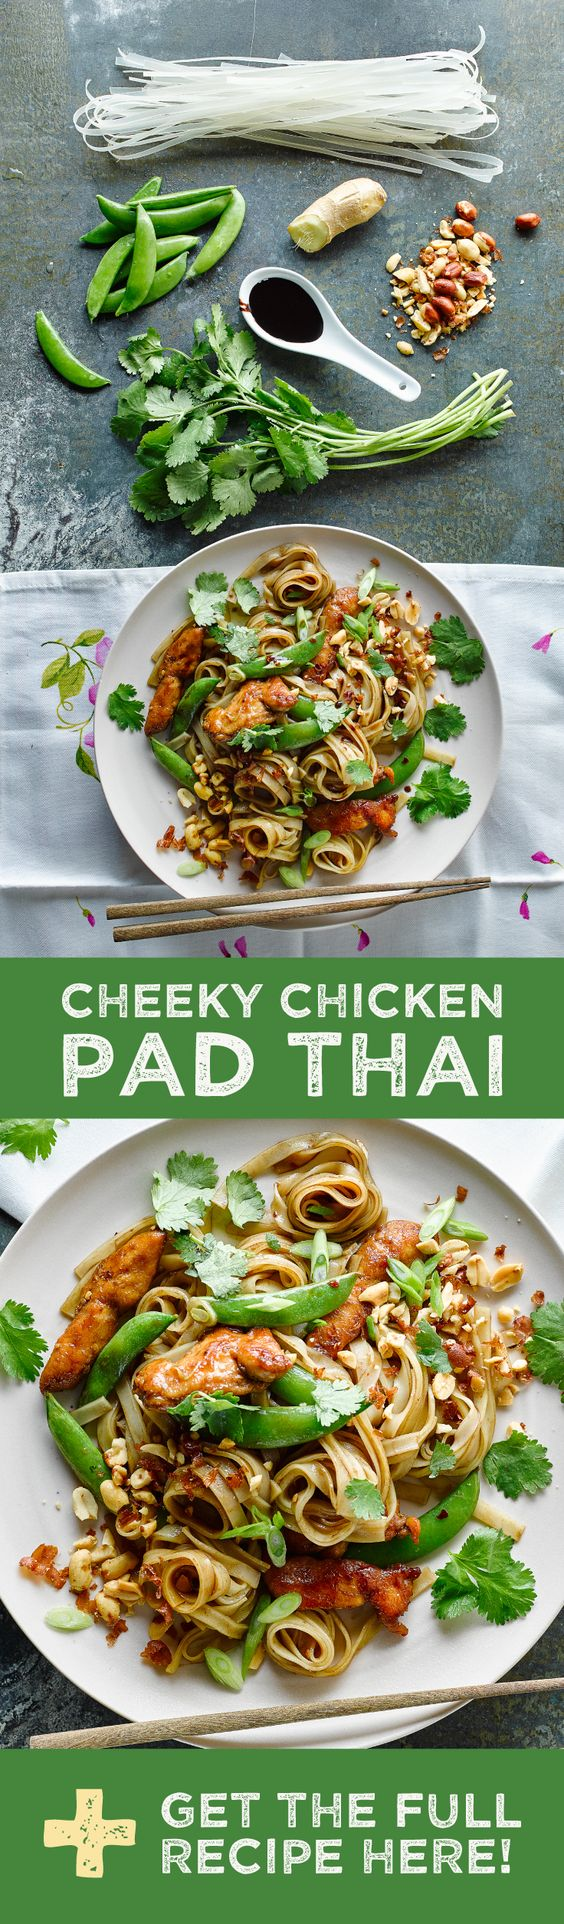 Our version of Pad Thai uses Thai noodles, juicy chicken and sugarsnap peas for sweetness and crunch. Not forgetting one of the key flavours - tamarind. Originally from Africa, tamarind has that sweet and sour flavour we most commonly associate with this popular, much loved dish.  Click to get the Full Recipe and £25 OFF your first order (if you want all the ingredients delivered to your door)!